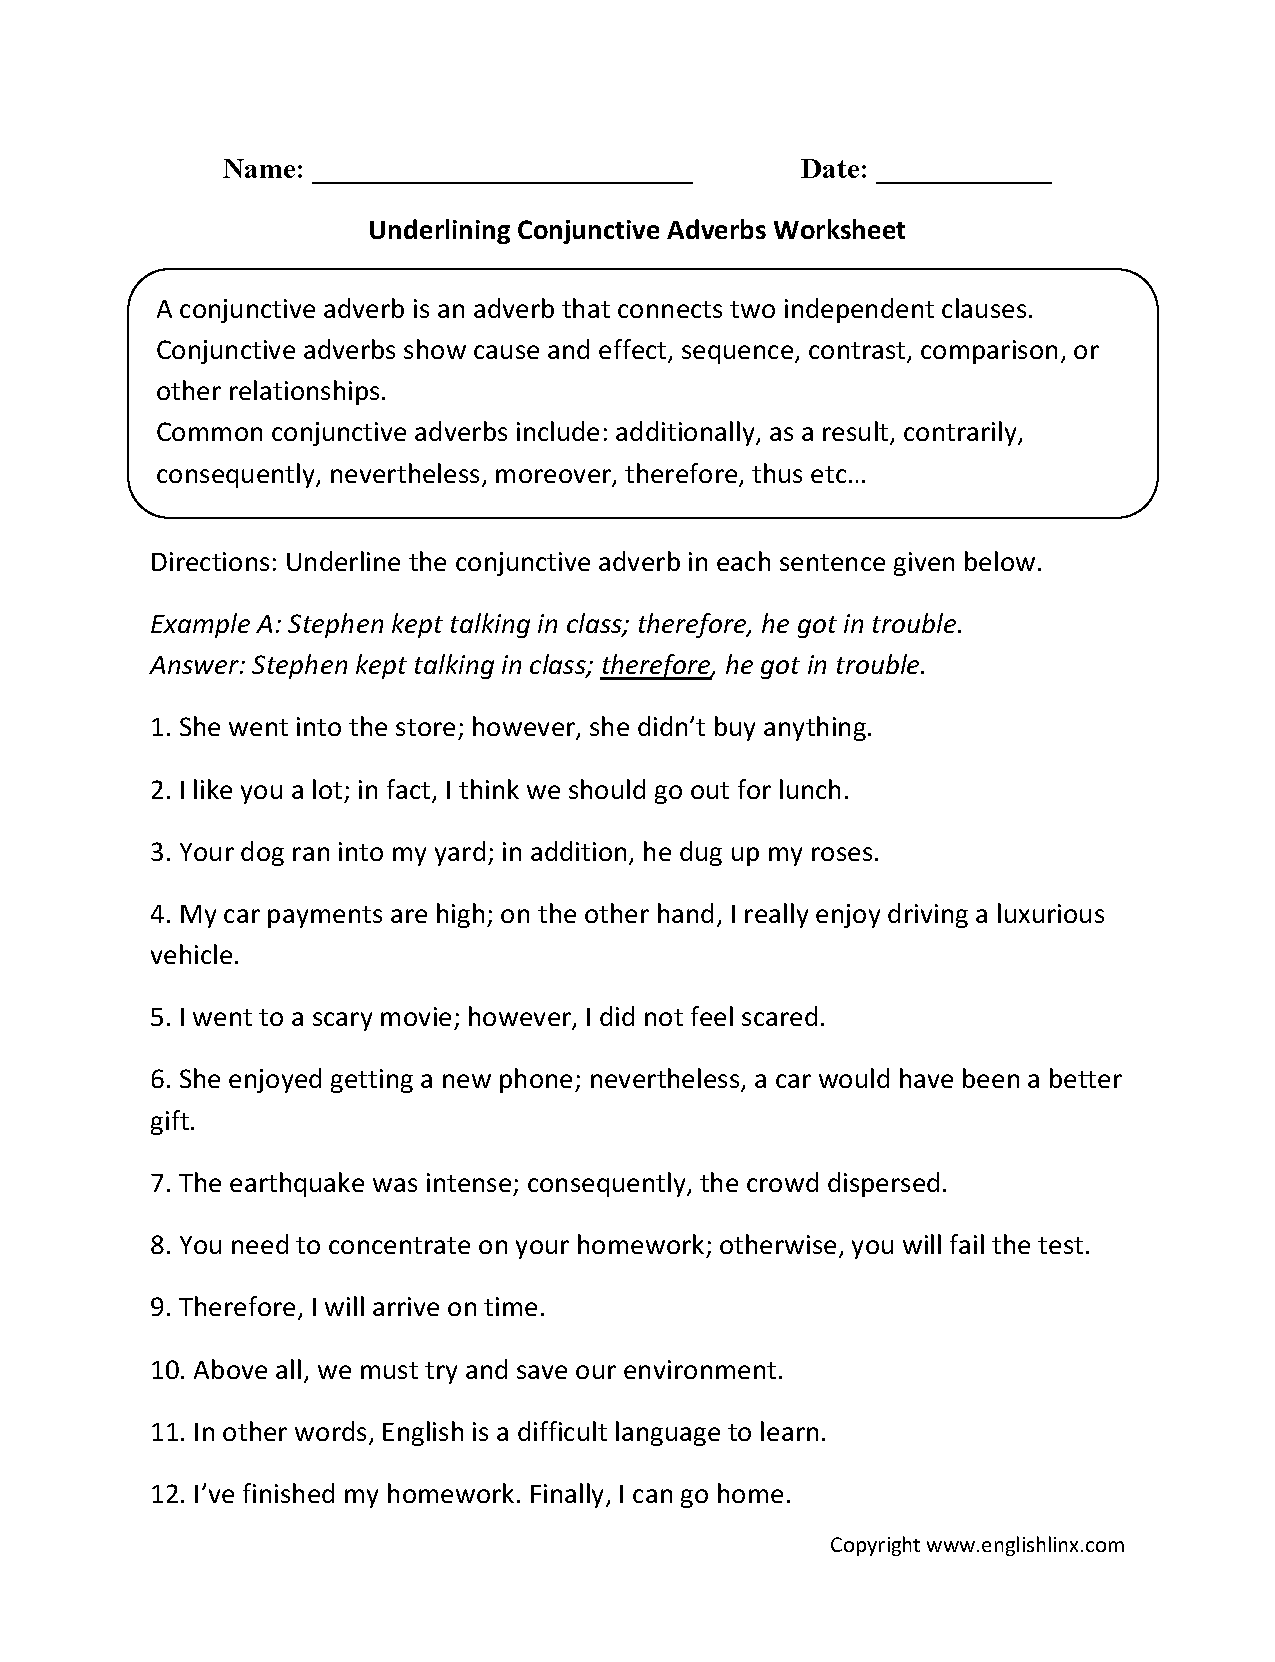 Weirdmailus  Personable Englishlinxcom  Conjunctions Worksheets With Lovable Worksheet With Beautiful Investment Worksheet Also Esl Printable Worksheets For Adults In Addition Ratio Proportion And Percent Worksheet And Simple Equation Worksheets As Well As Temporal Concepts Worksheets Additionally Mouse And The Motorcycle Worksheets From Englishlinxcom With Weirdmailus  Lovable Englishlinxcom  Conjunctions Worksheets With Beautiful Worksheet And Personable Investment Worksheet Also Esl Printable Worksheets For Adults In Addition Ratio Proportion And Percent Worksheet From Englishlinxcom